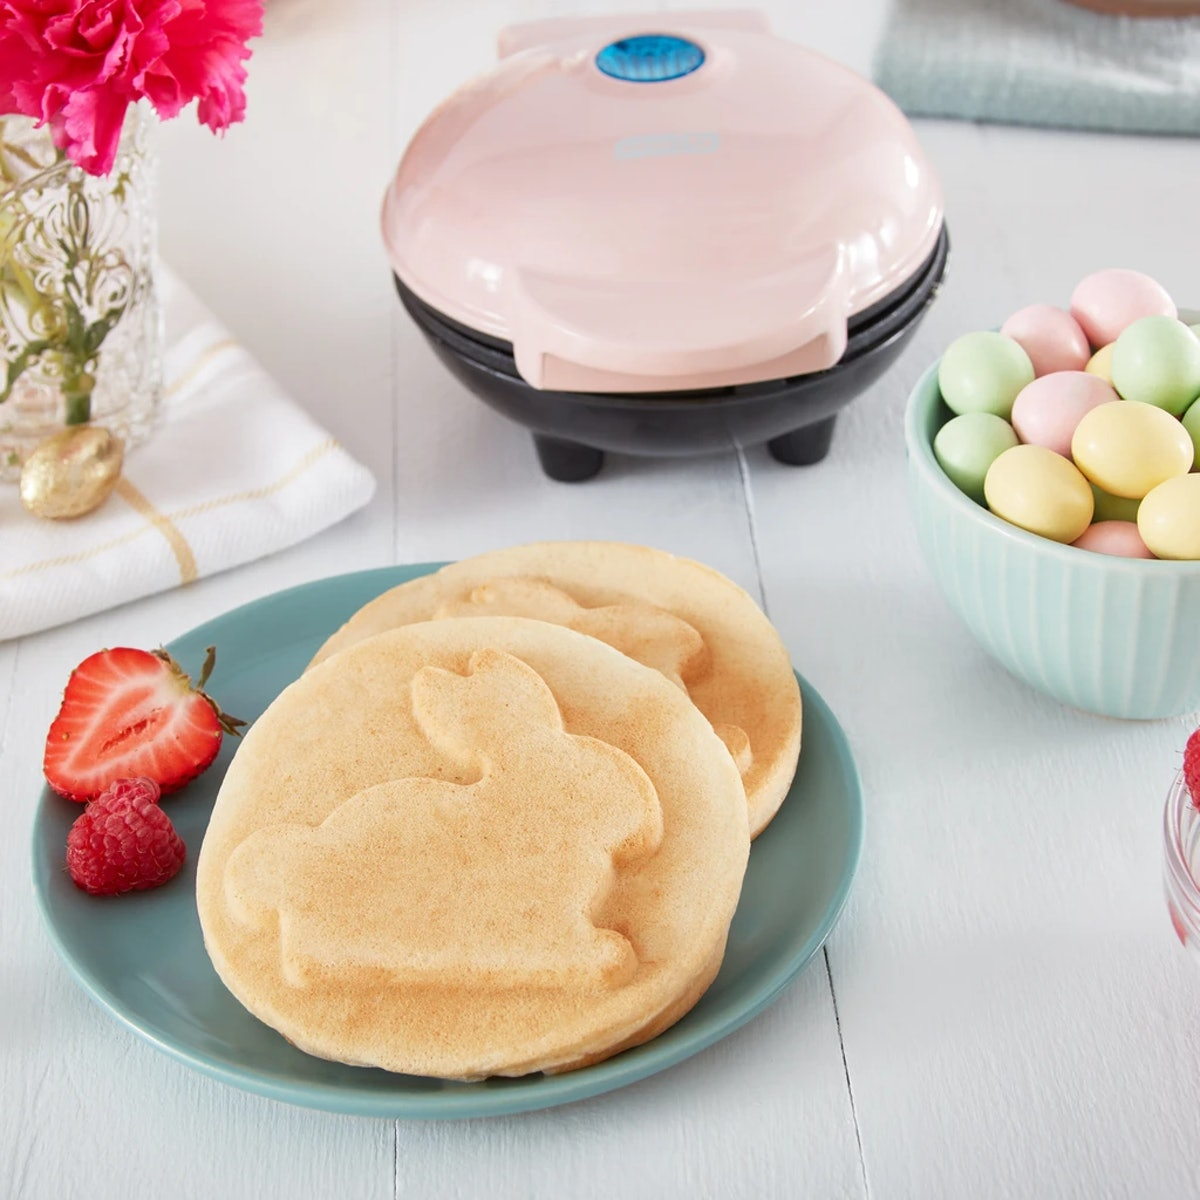 This Bunny Mini Waffle Maker from Dash comes in two pastel colors.